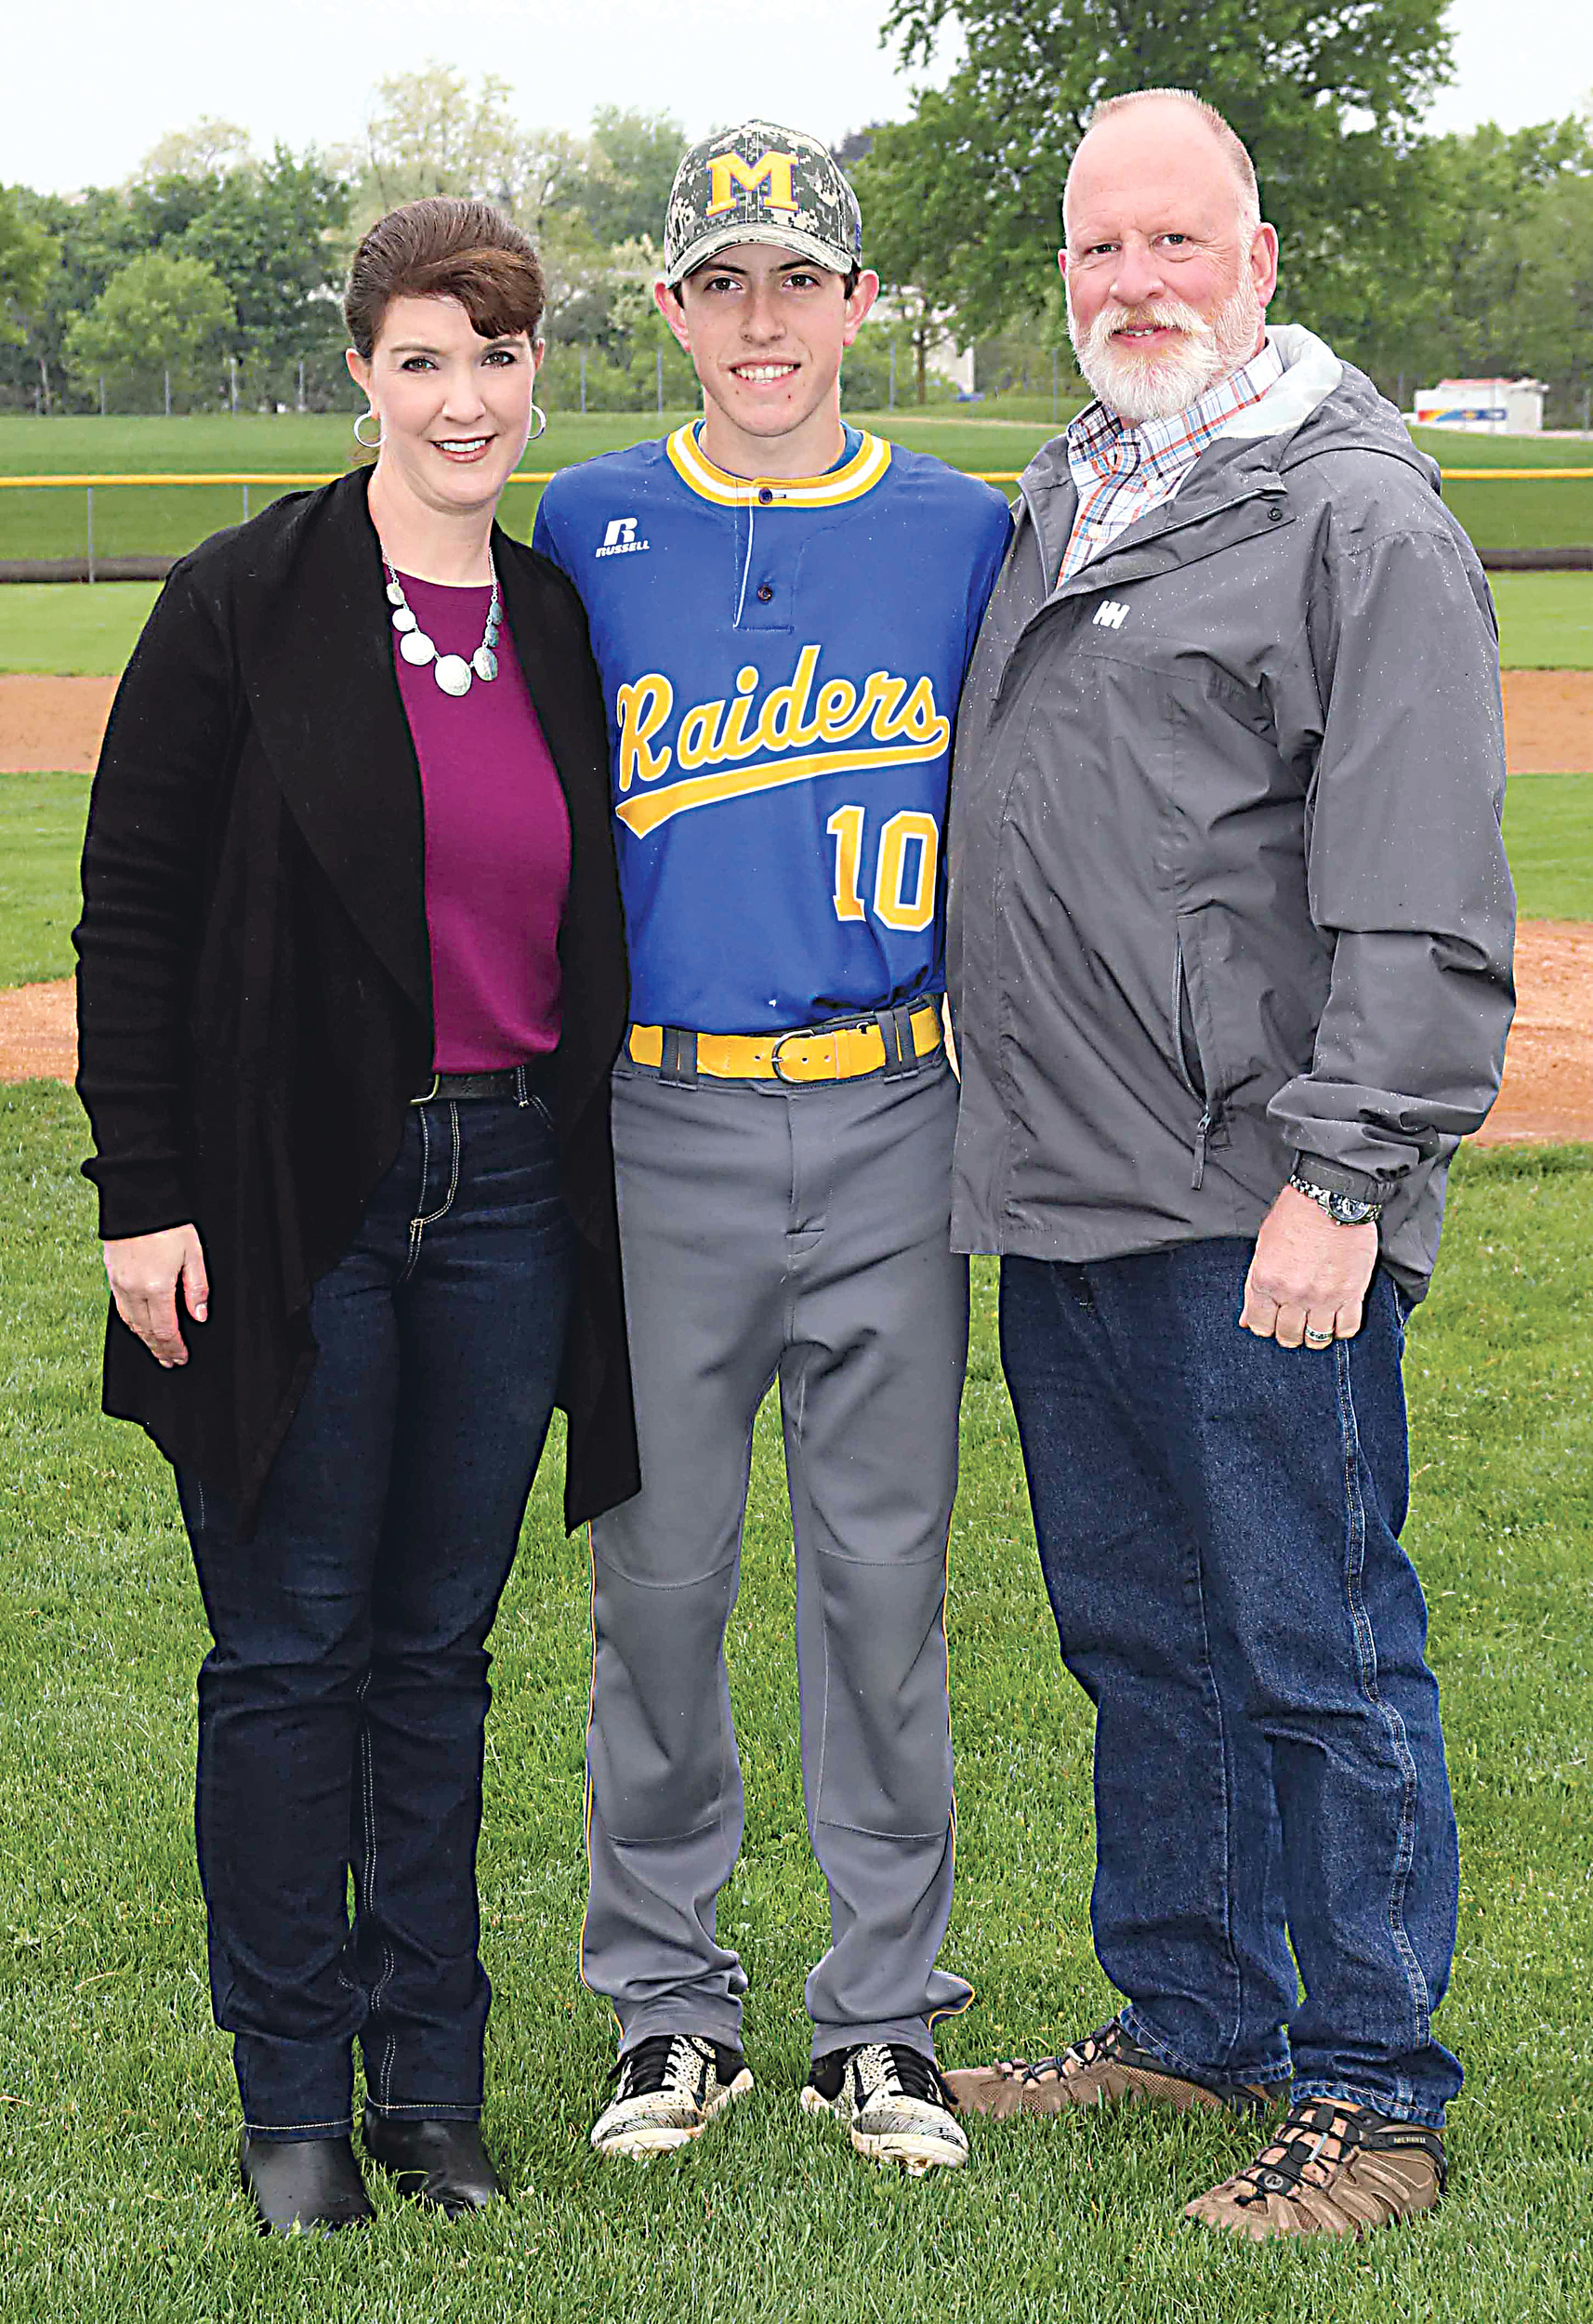 Jimmy Fitzpatrick with parents Bridget and Jim Fitzpatrick.